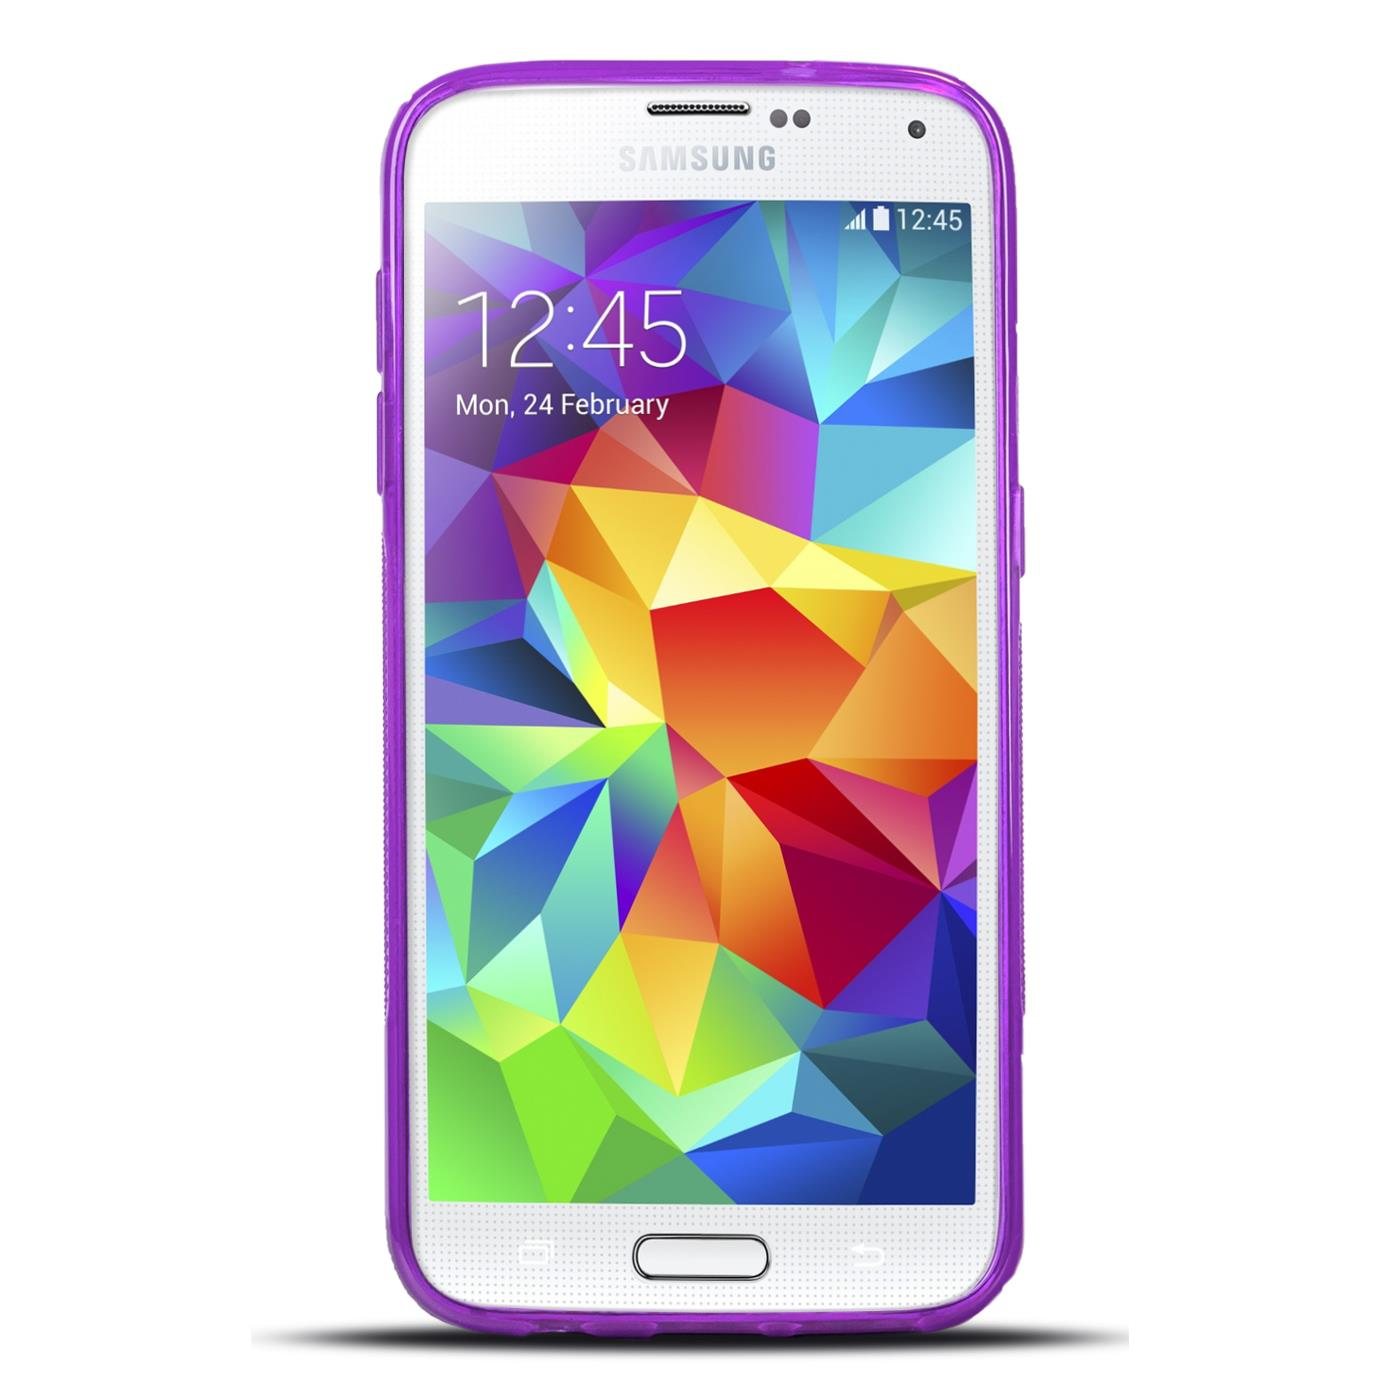 Samsung-Galaxy-s5-Neo-Silikon-Gel-S-Line-Case-Cover-Ultra-Thin-Slim-Back-Bumper Indexbild 13